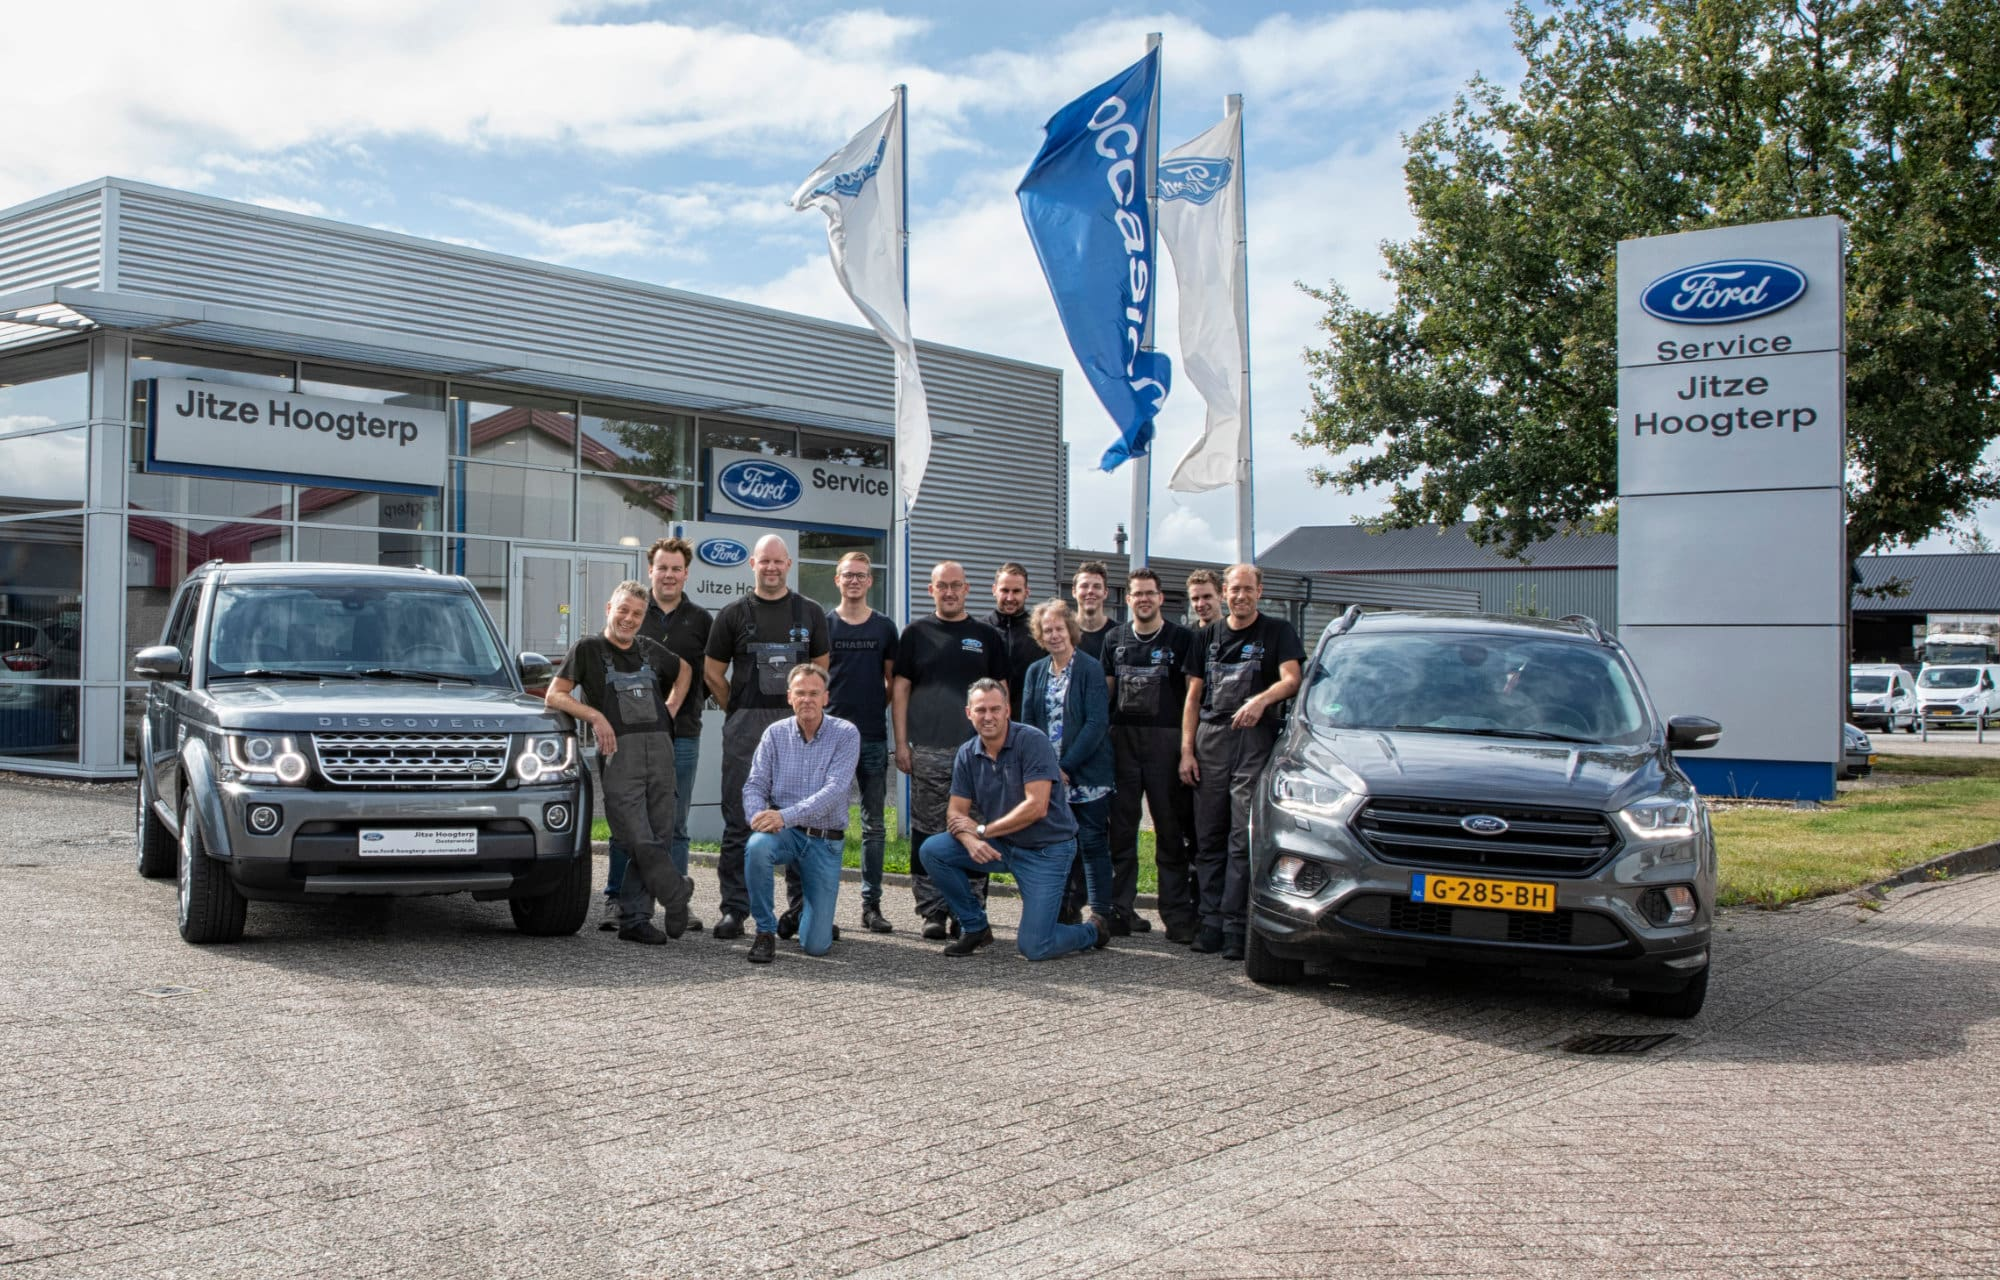 Team Ford Jitze Hoogterp in Oosterwolde